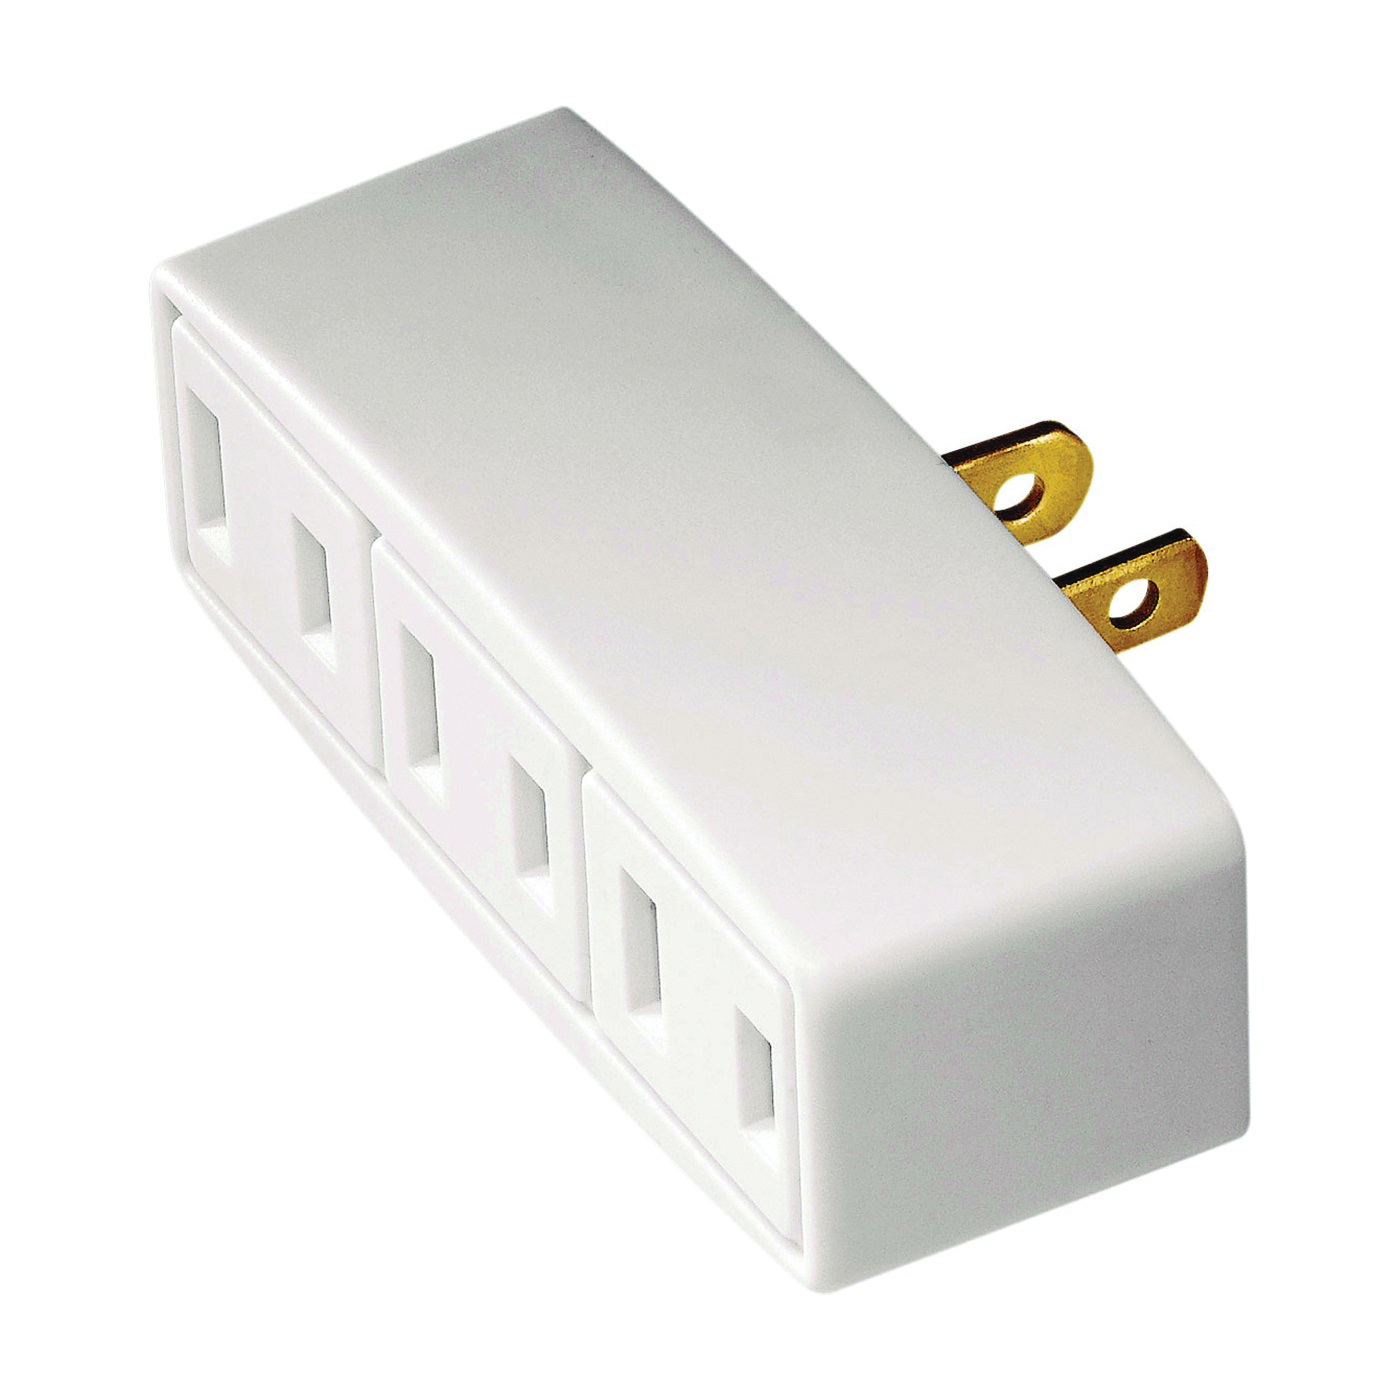 Picture of Eaton Wiring Devices BP1747W Outlet Tap, 2-Pole, 15 A, 125 V, 3-Outlet, NEMA: 1-15R